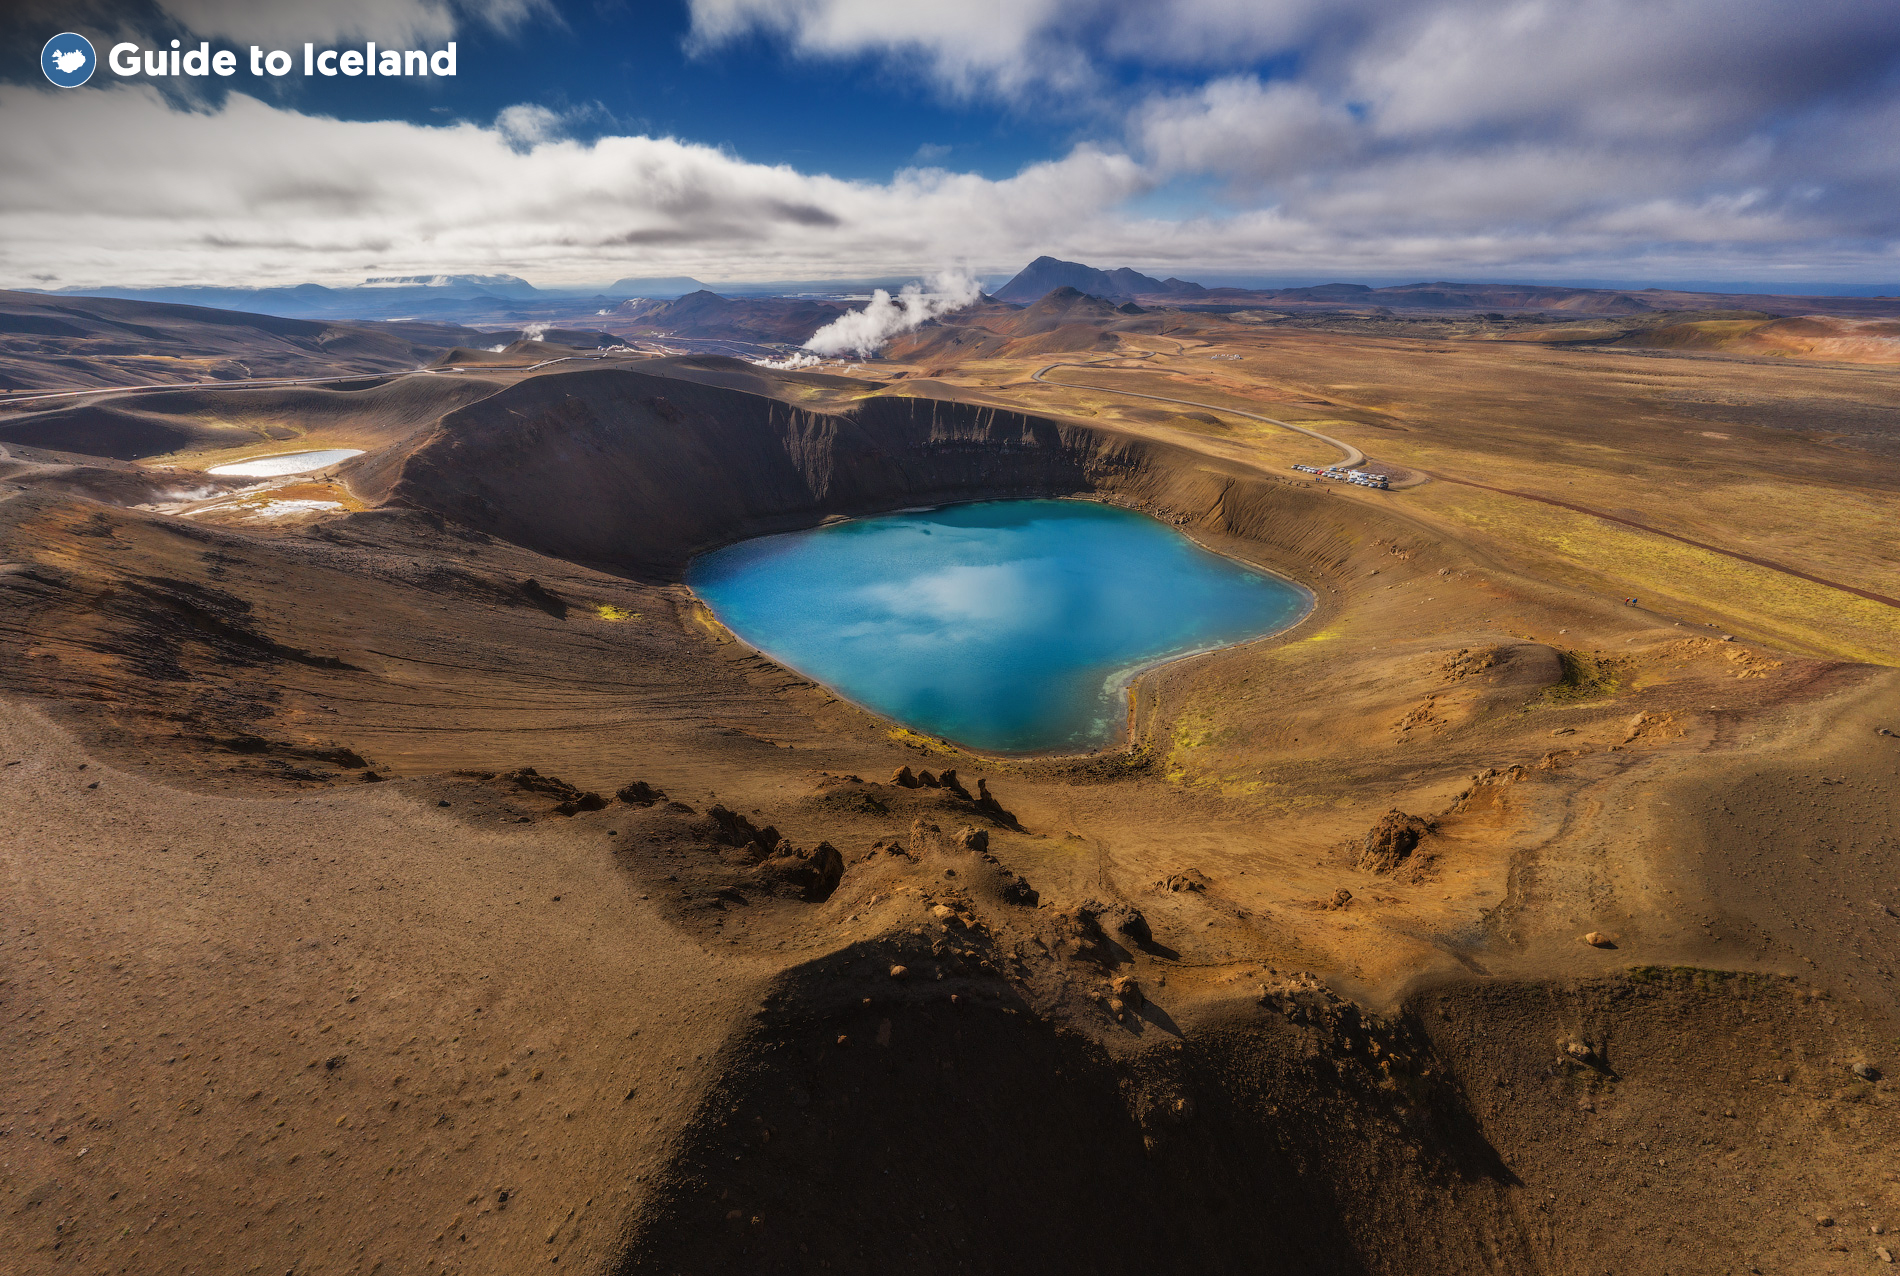 9 Day Summer Self Drive Tour of the Complete Ring Road of Iceland with a Focus on the South Coast - day 4